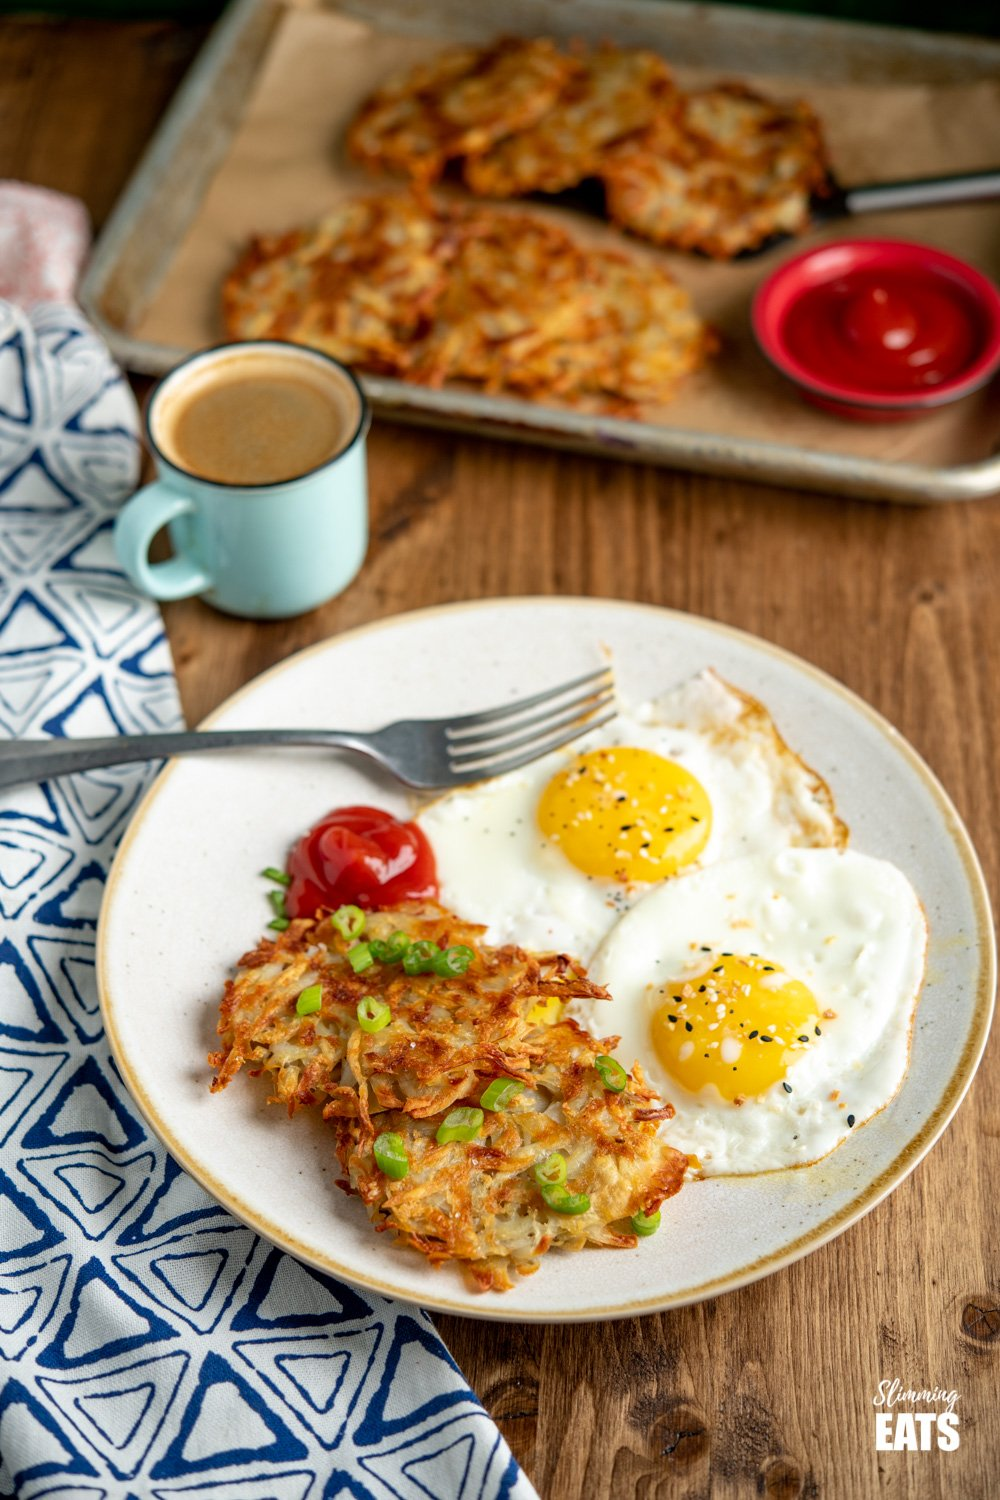 Crispy Golden Hash Browns with eggs and ketchup on a plate with silver fork, tray of hash browns in the back and mug of espresso